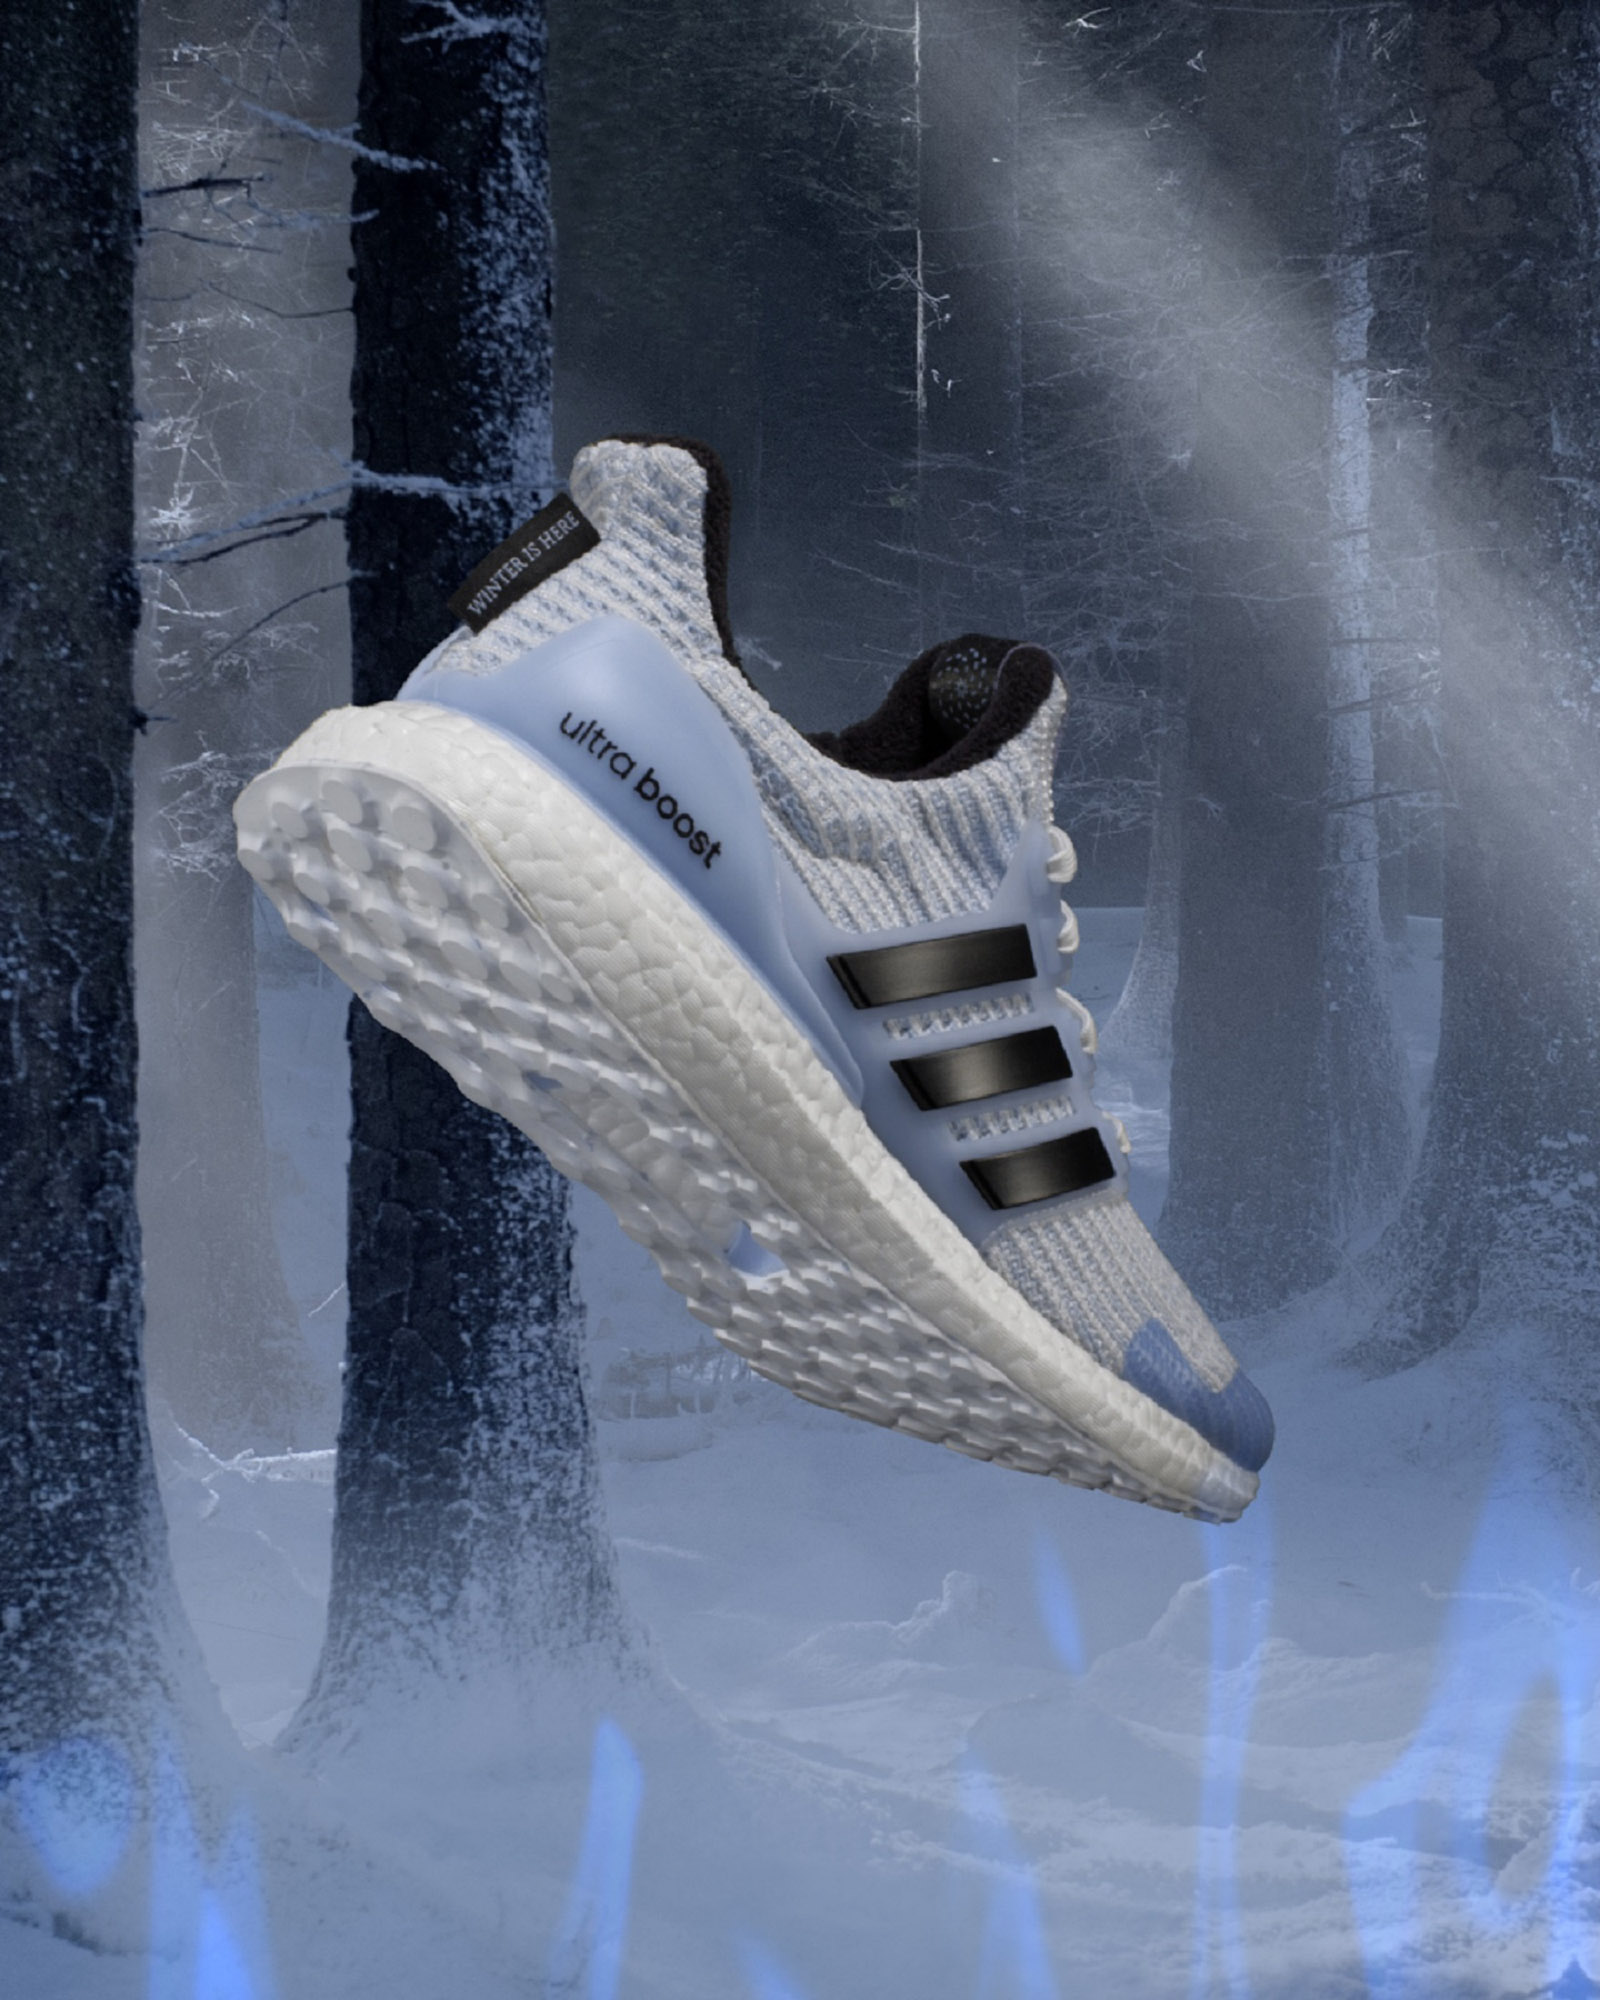 Game of Thrones x adidas UltraBOOST 4